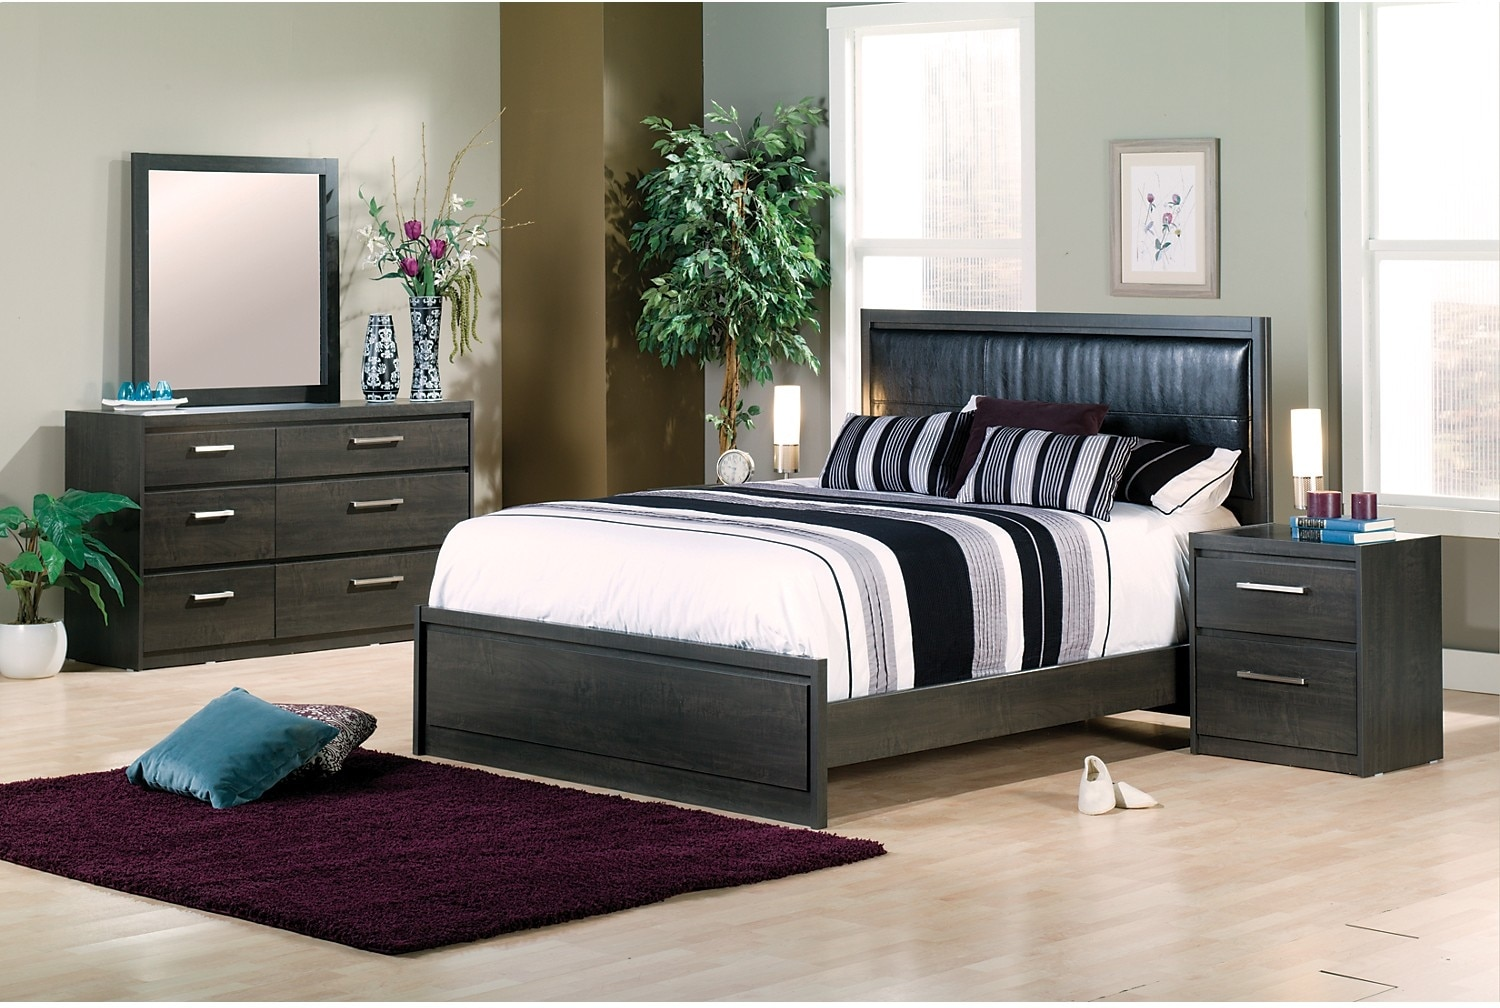 Bedroom Furniture - Tyler 5-Piece Queen Bedroom Package